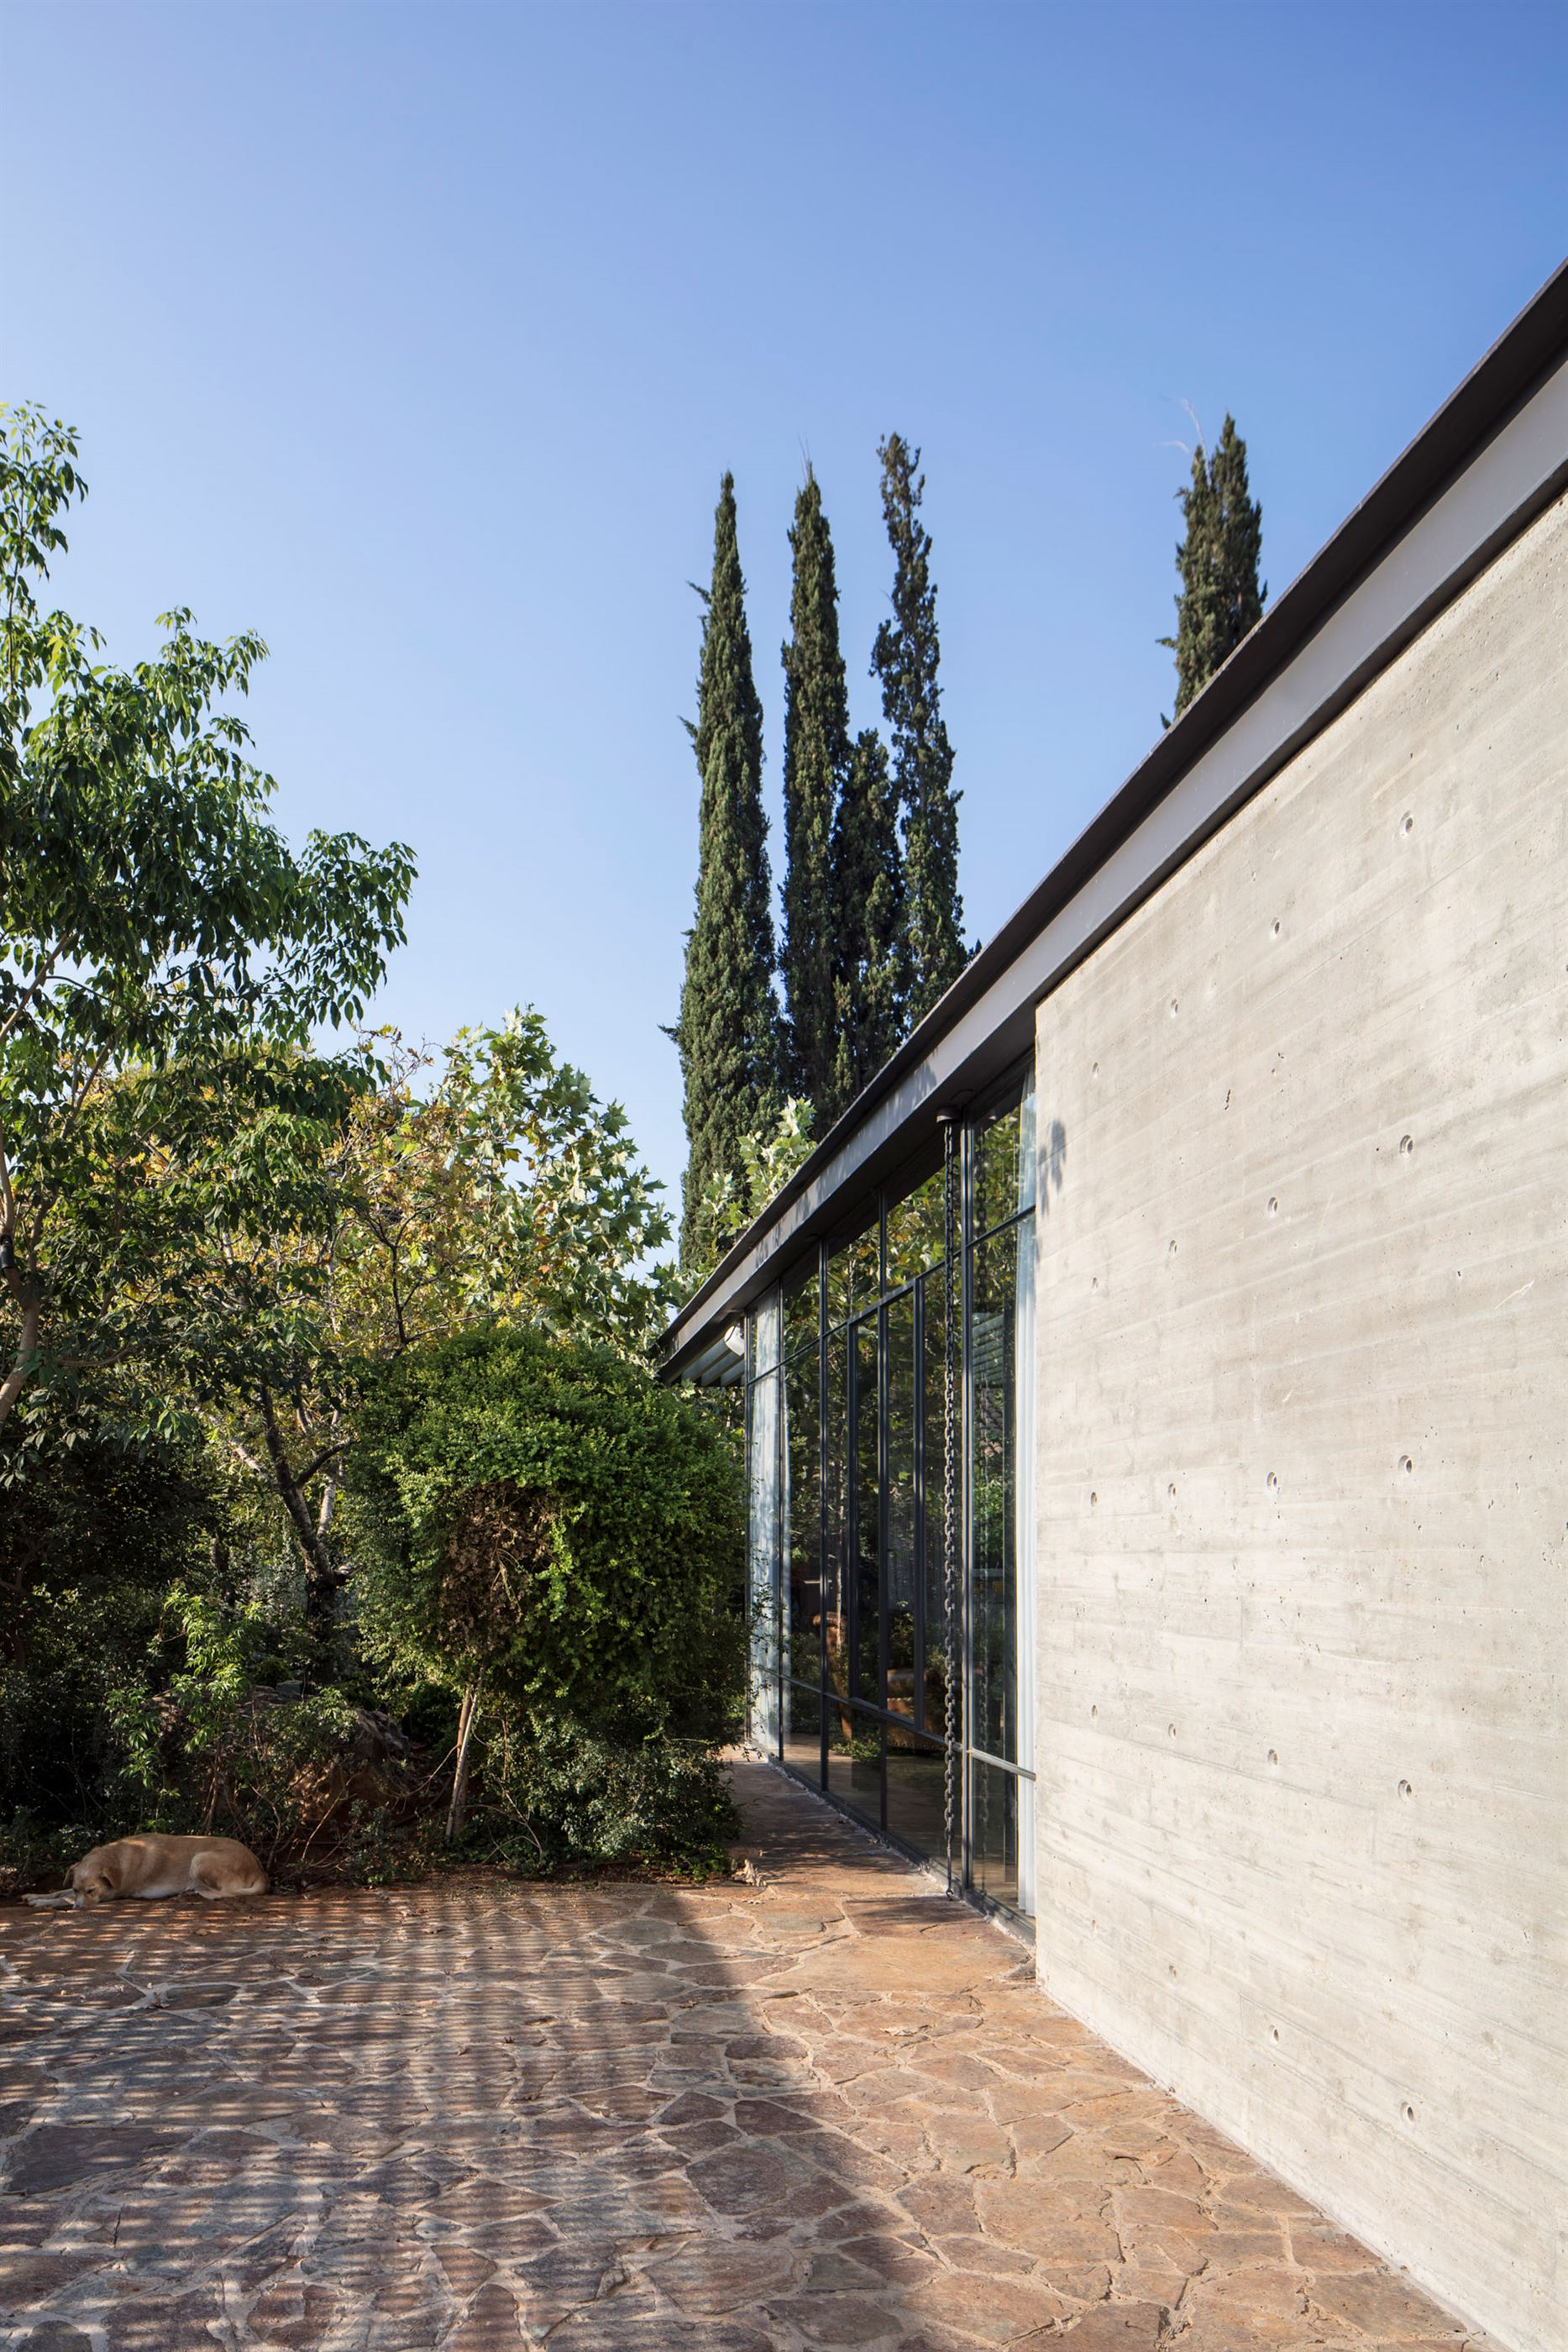 m-house-pitsou-kedem-architecture-residential-israel_dezeen_2364_col_1